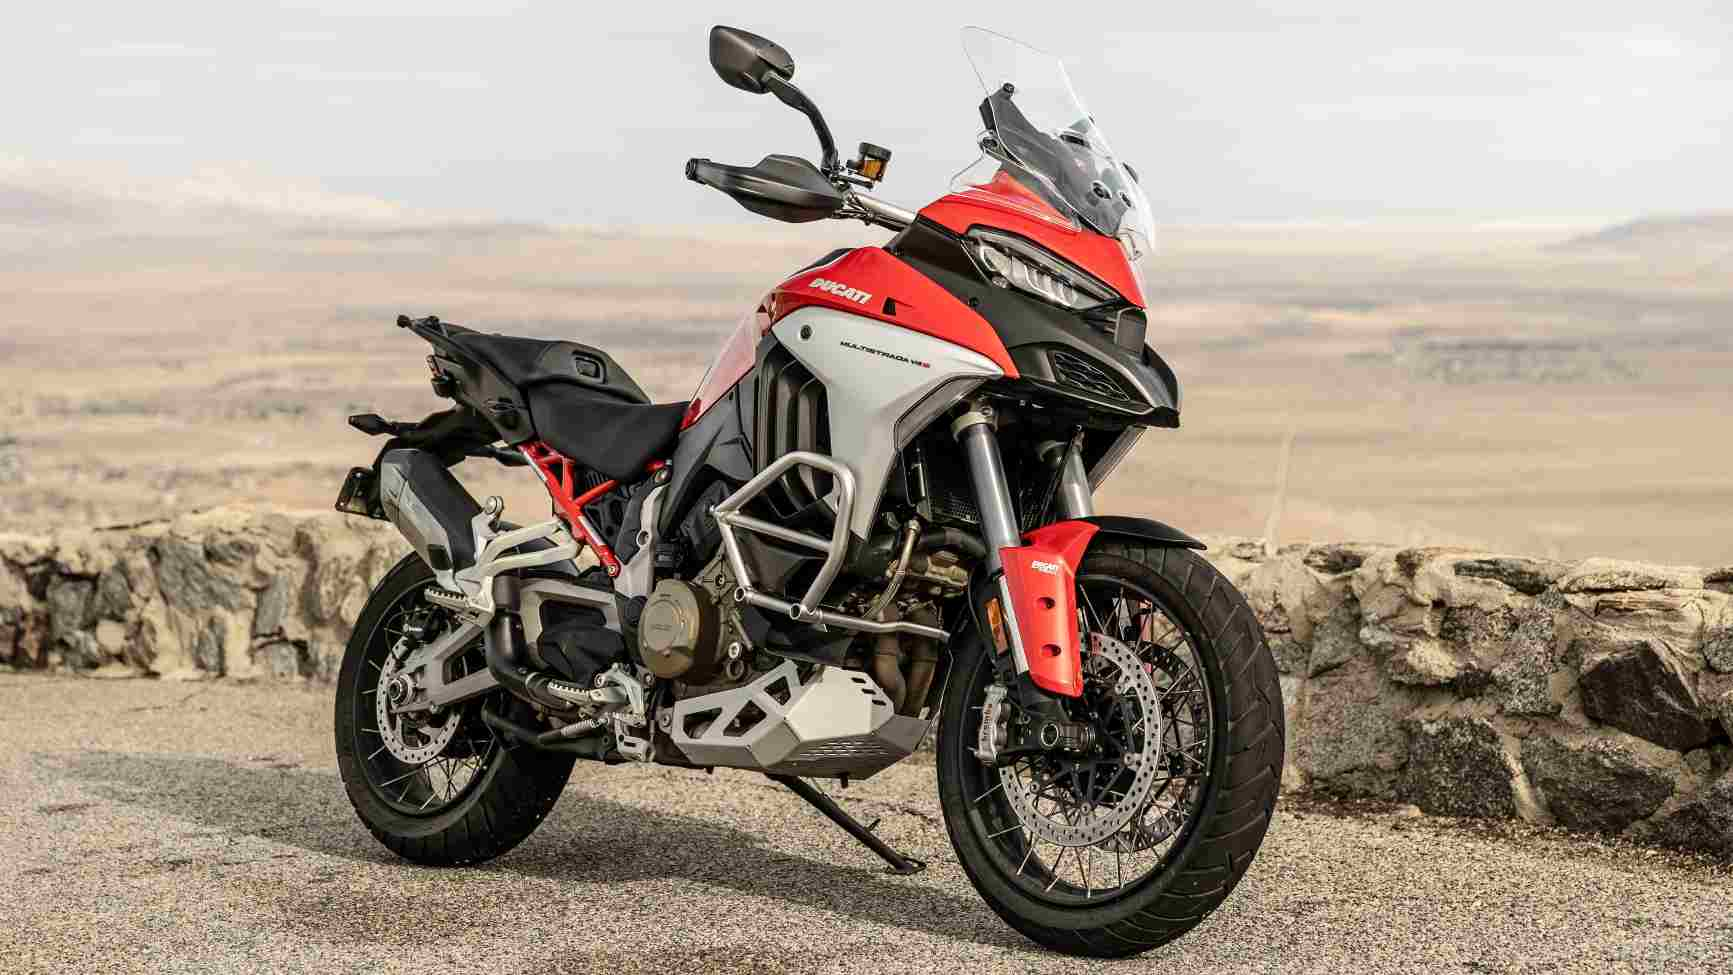 The Ducati Multistrada V4 is the first production motorcycle to feature a front and rear radar rider-assistance system. Image: Ducati